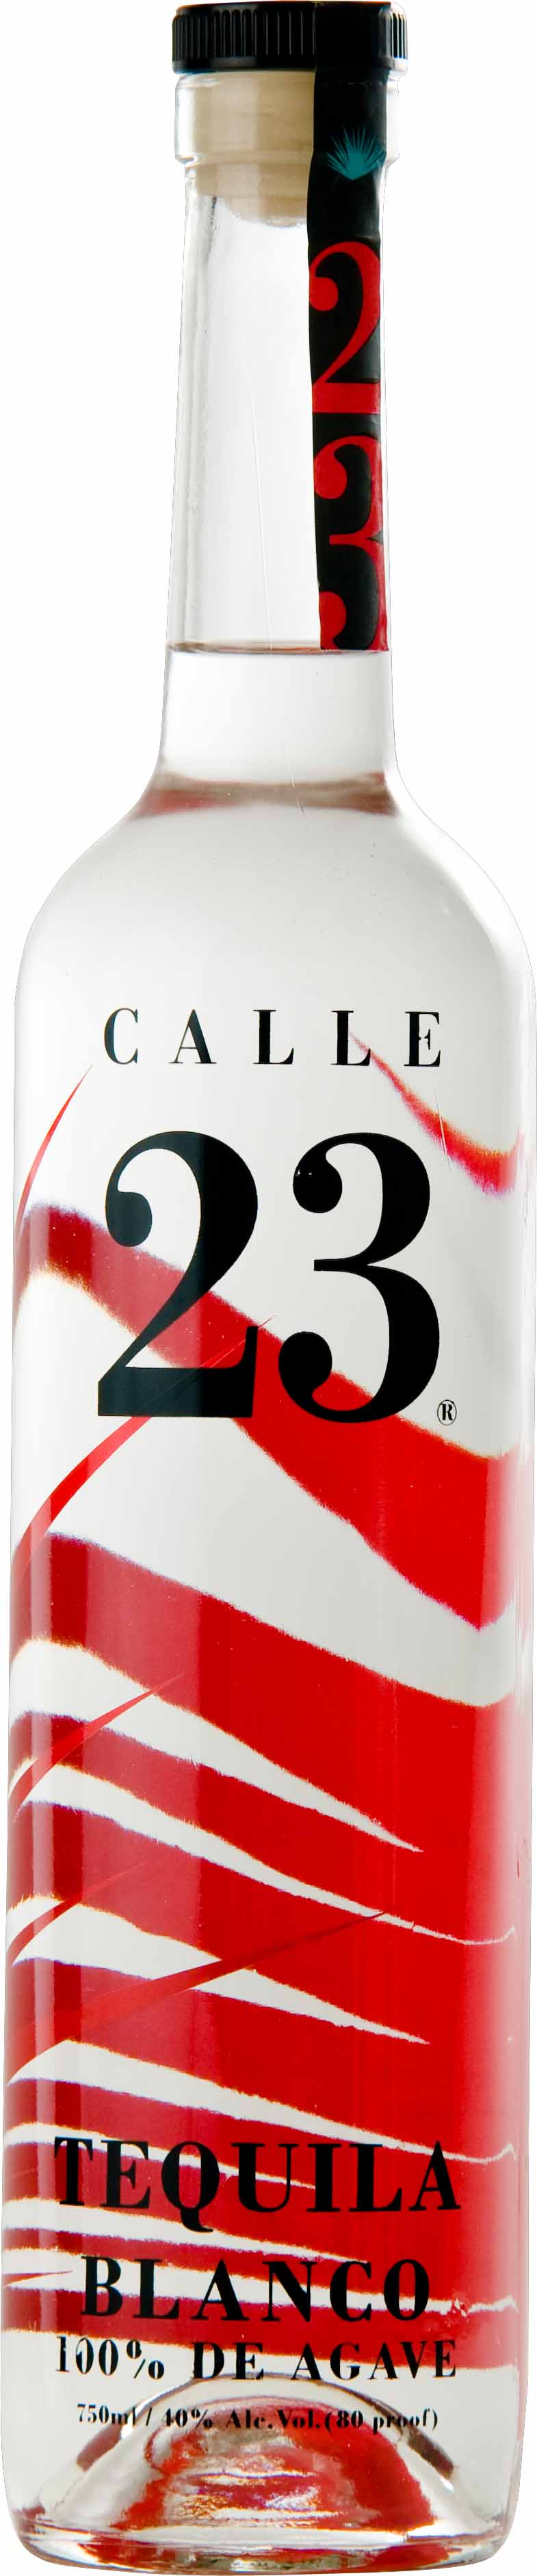 Tequila Calle 23 Blanco 100% Agave - 750ml